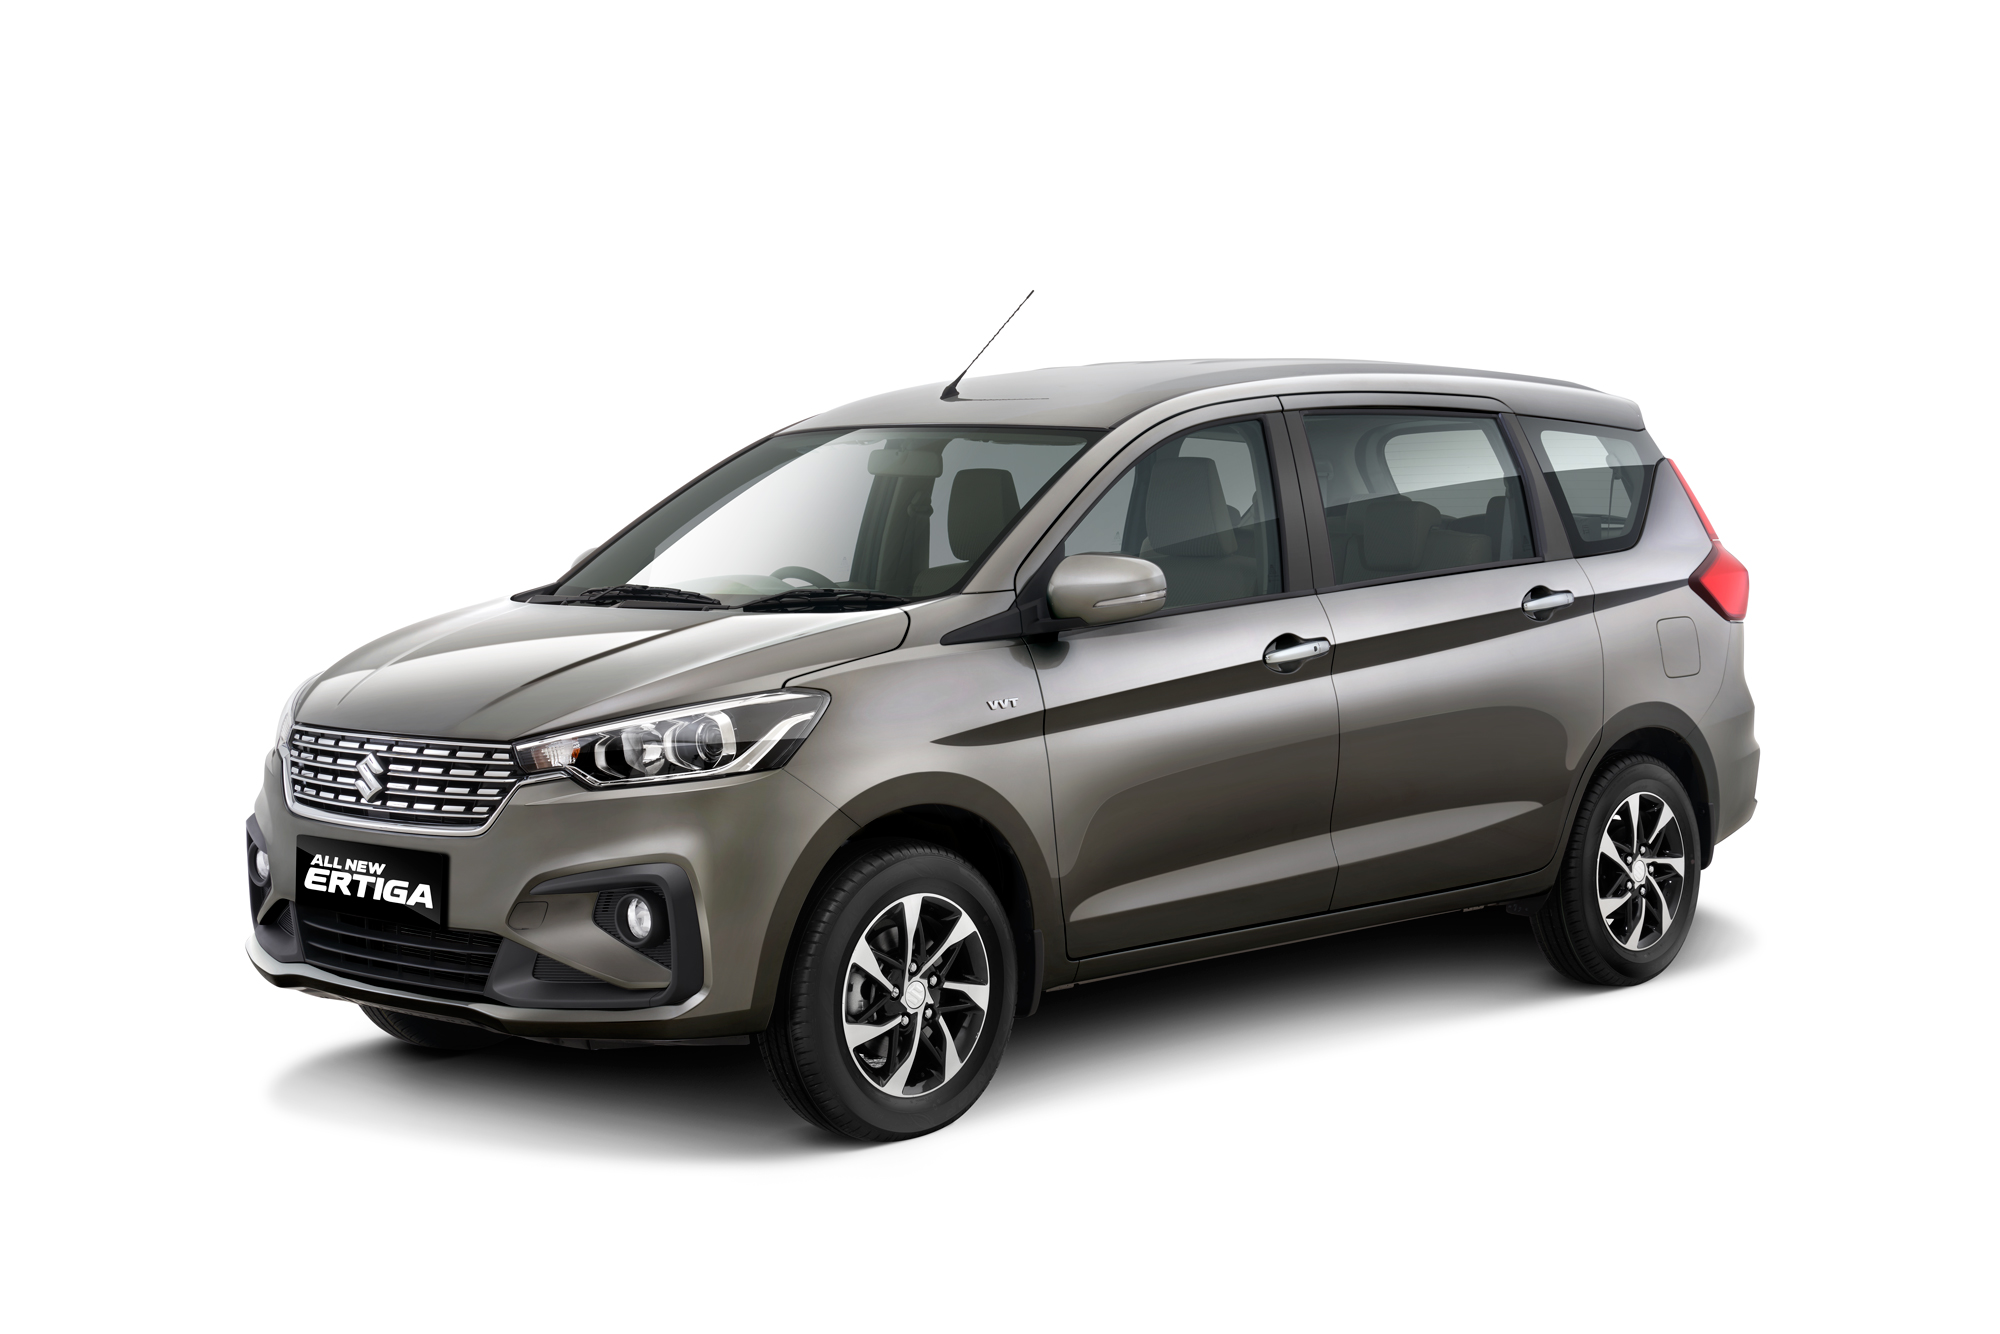 Detail Suzuki Ertiga Improvement 2019, McQueen YaQueen?